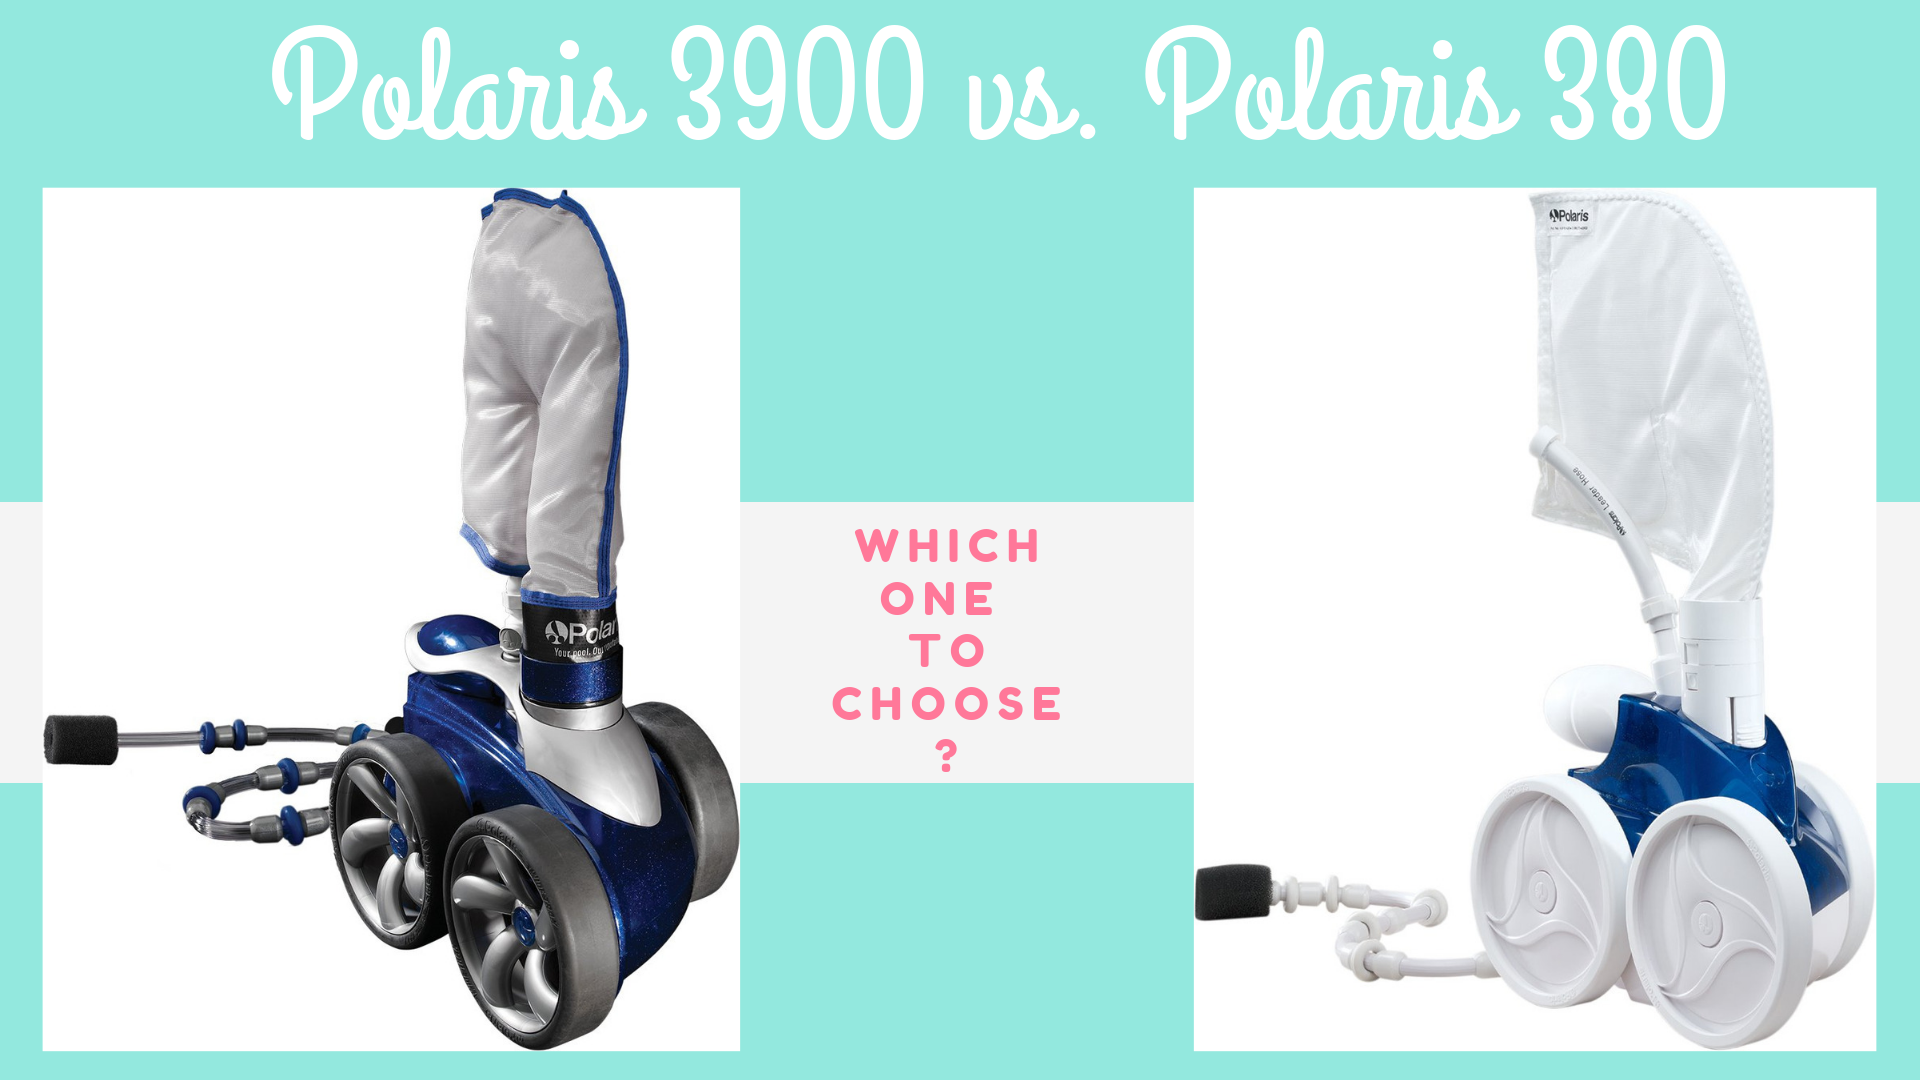 Polaris 3900 vs. Polaris 380